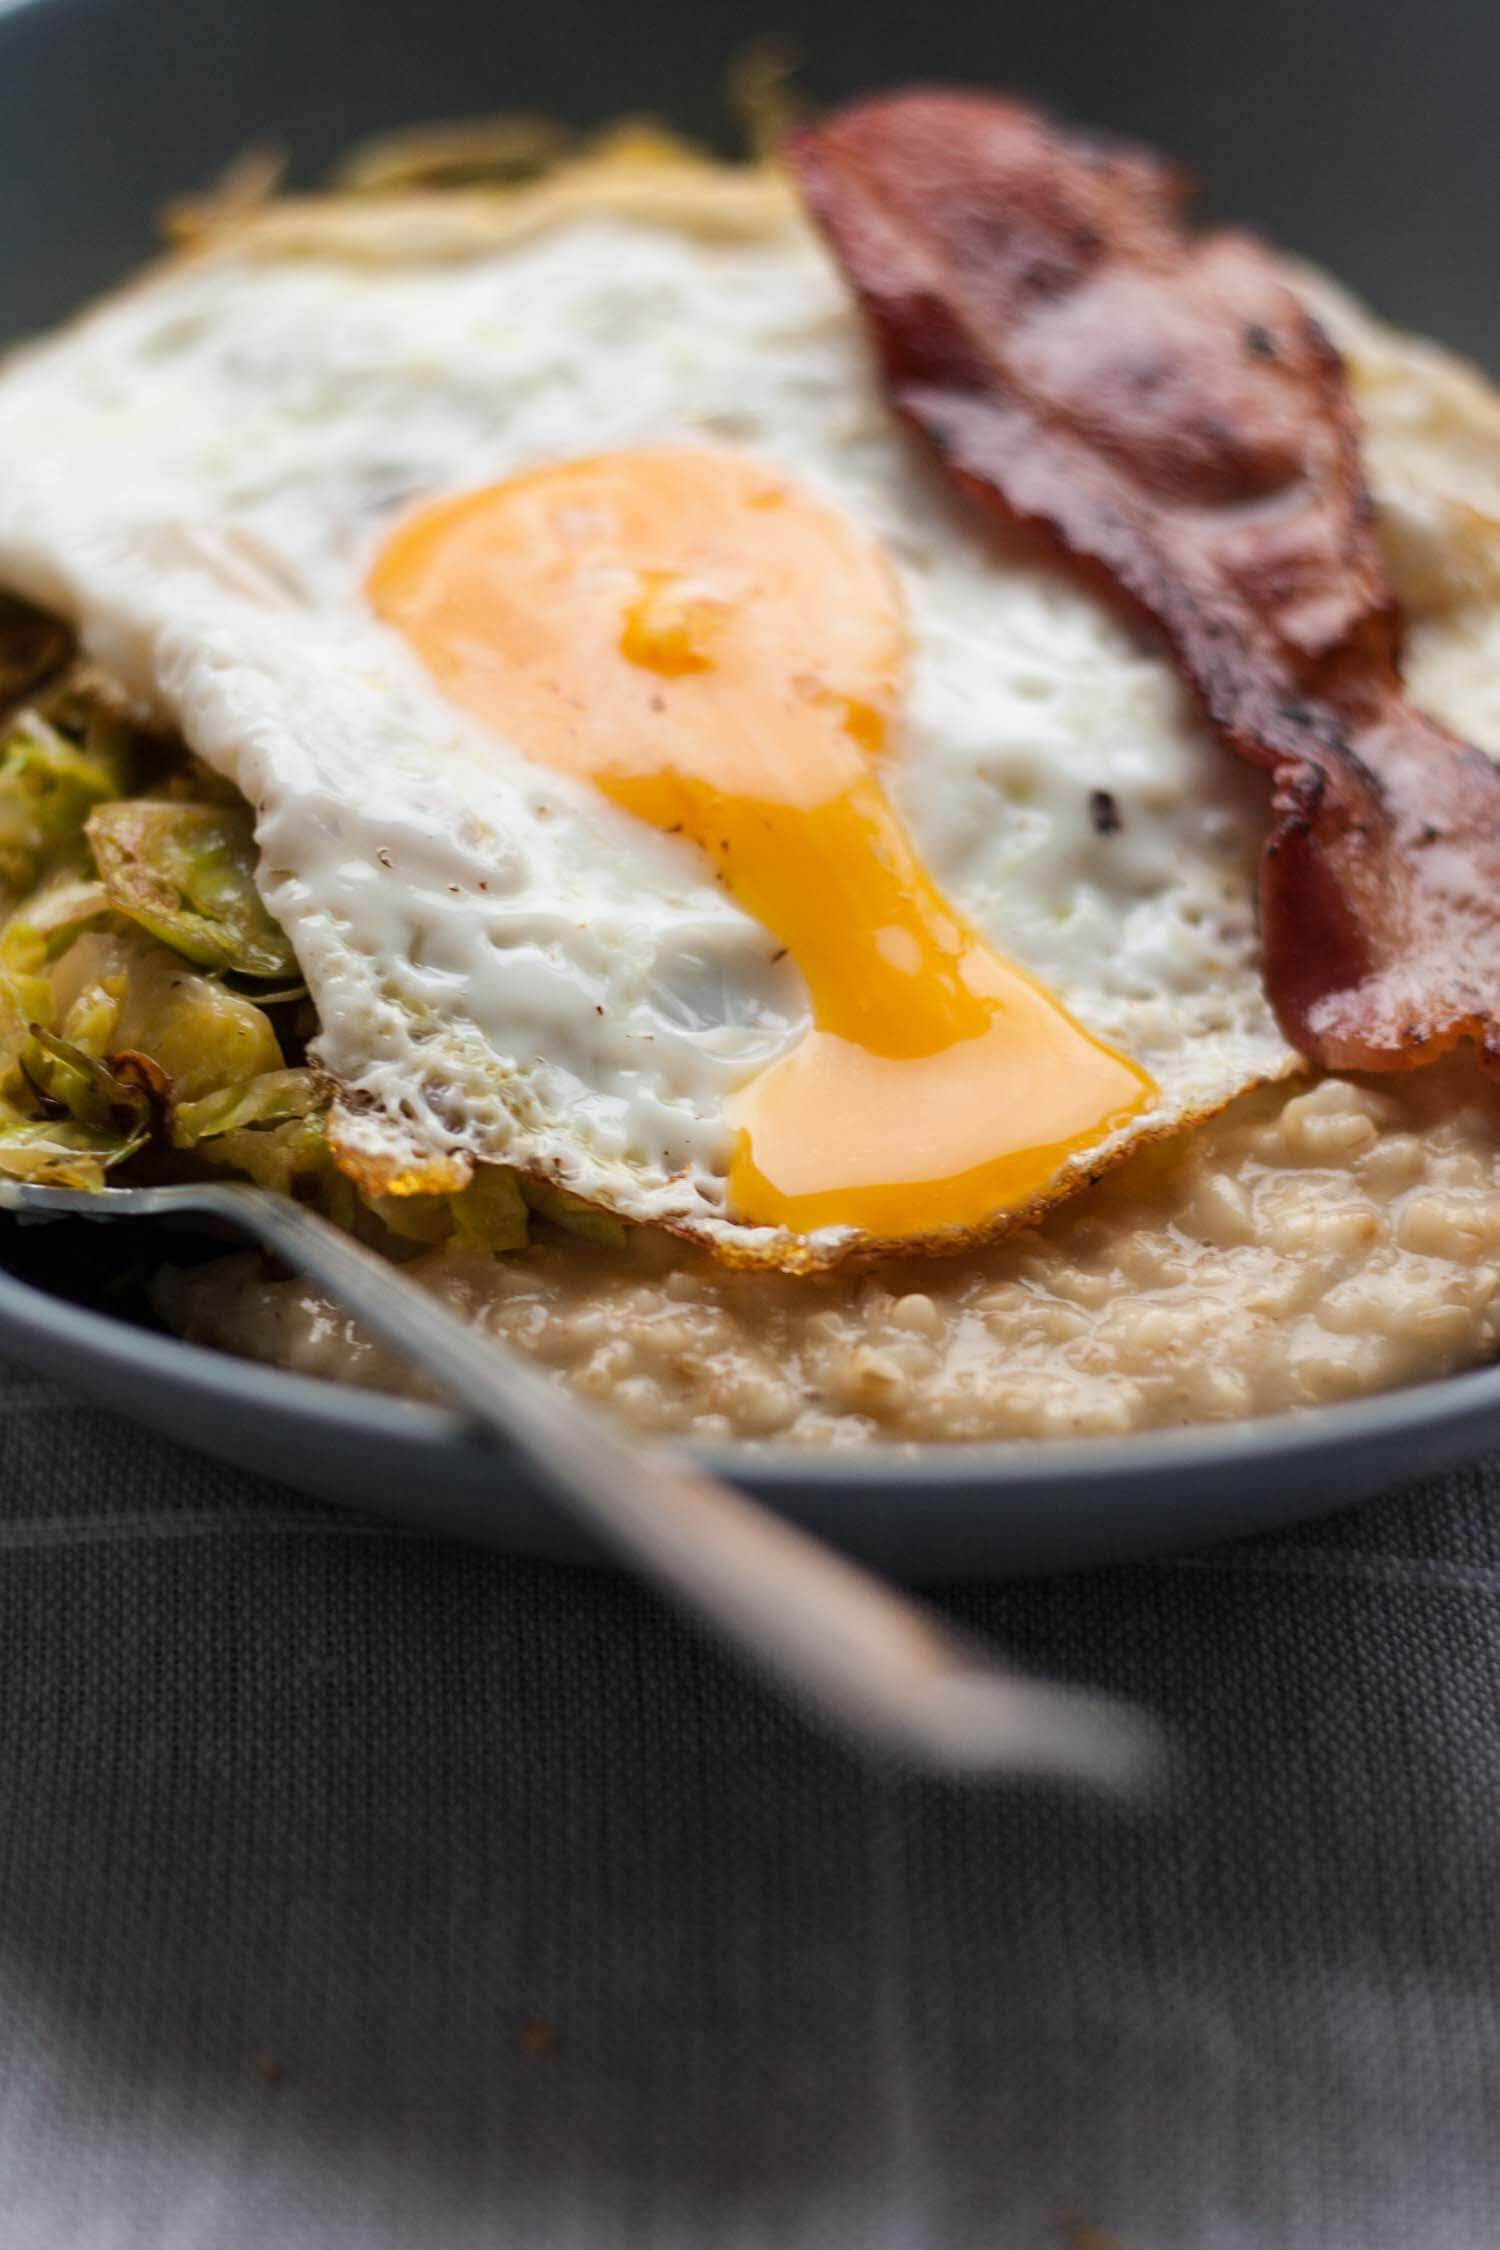 Savoury Porridge with Brussels Sprouts - this savoury oatmeal recipe is the perfect easy comfort food that is ready in less than half an hour! | eatloveeats.com